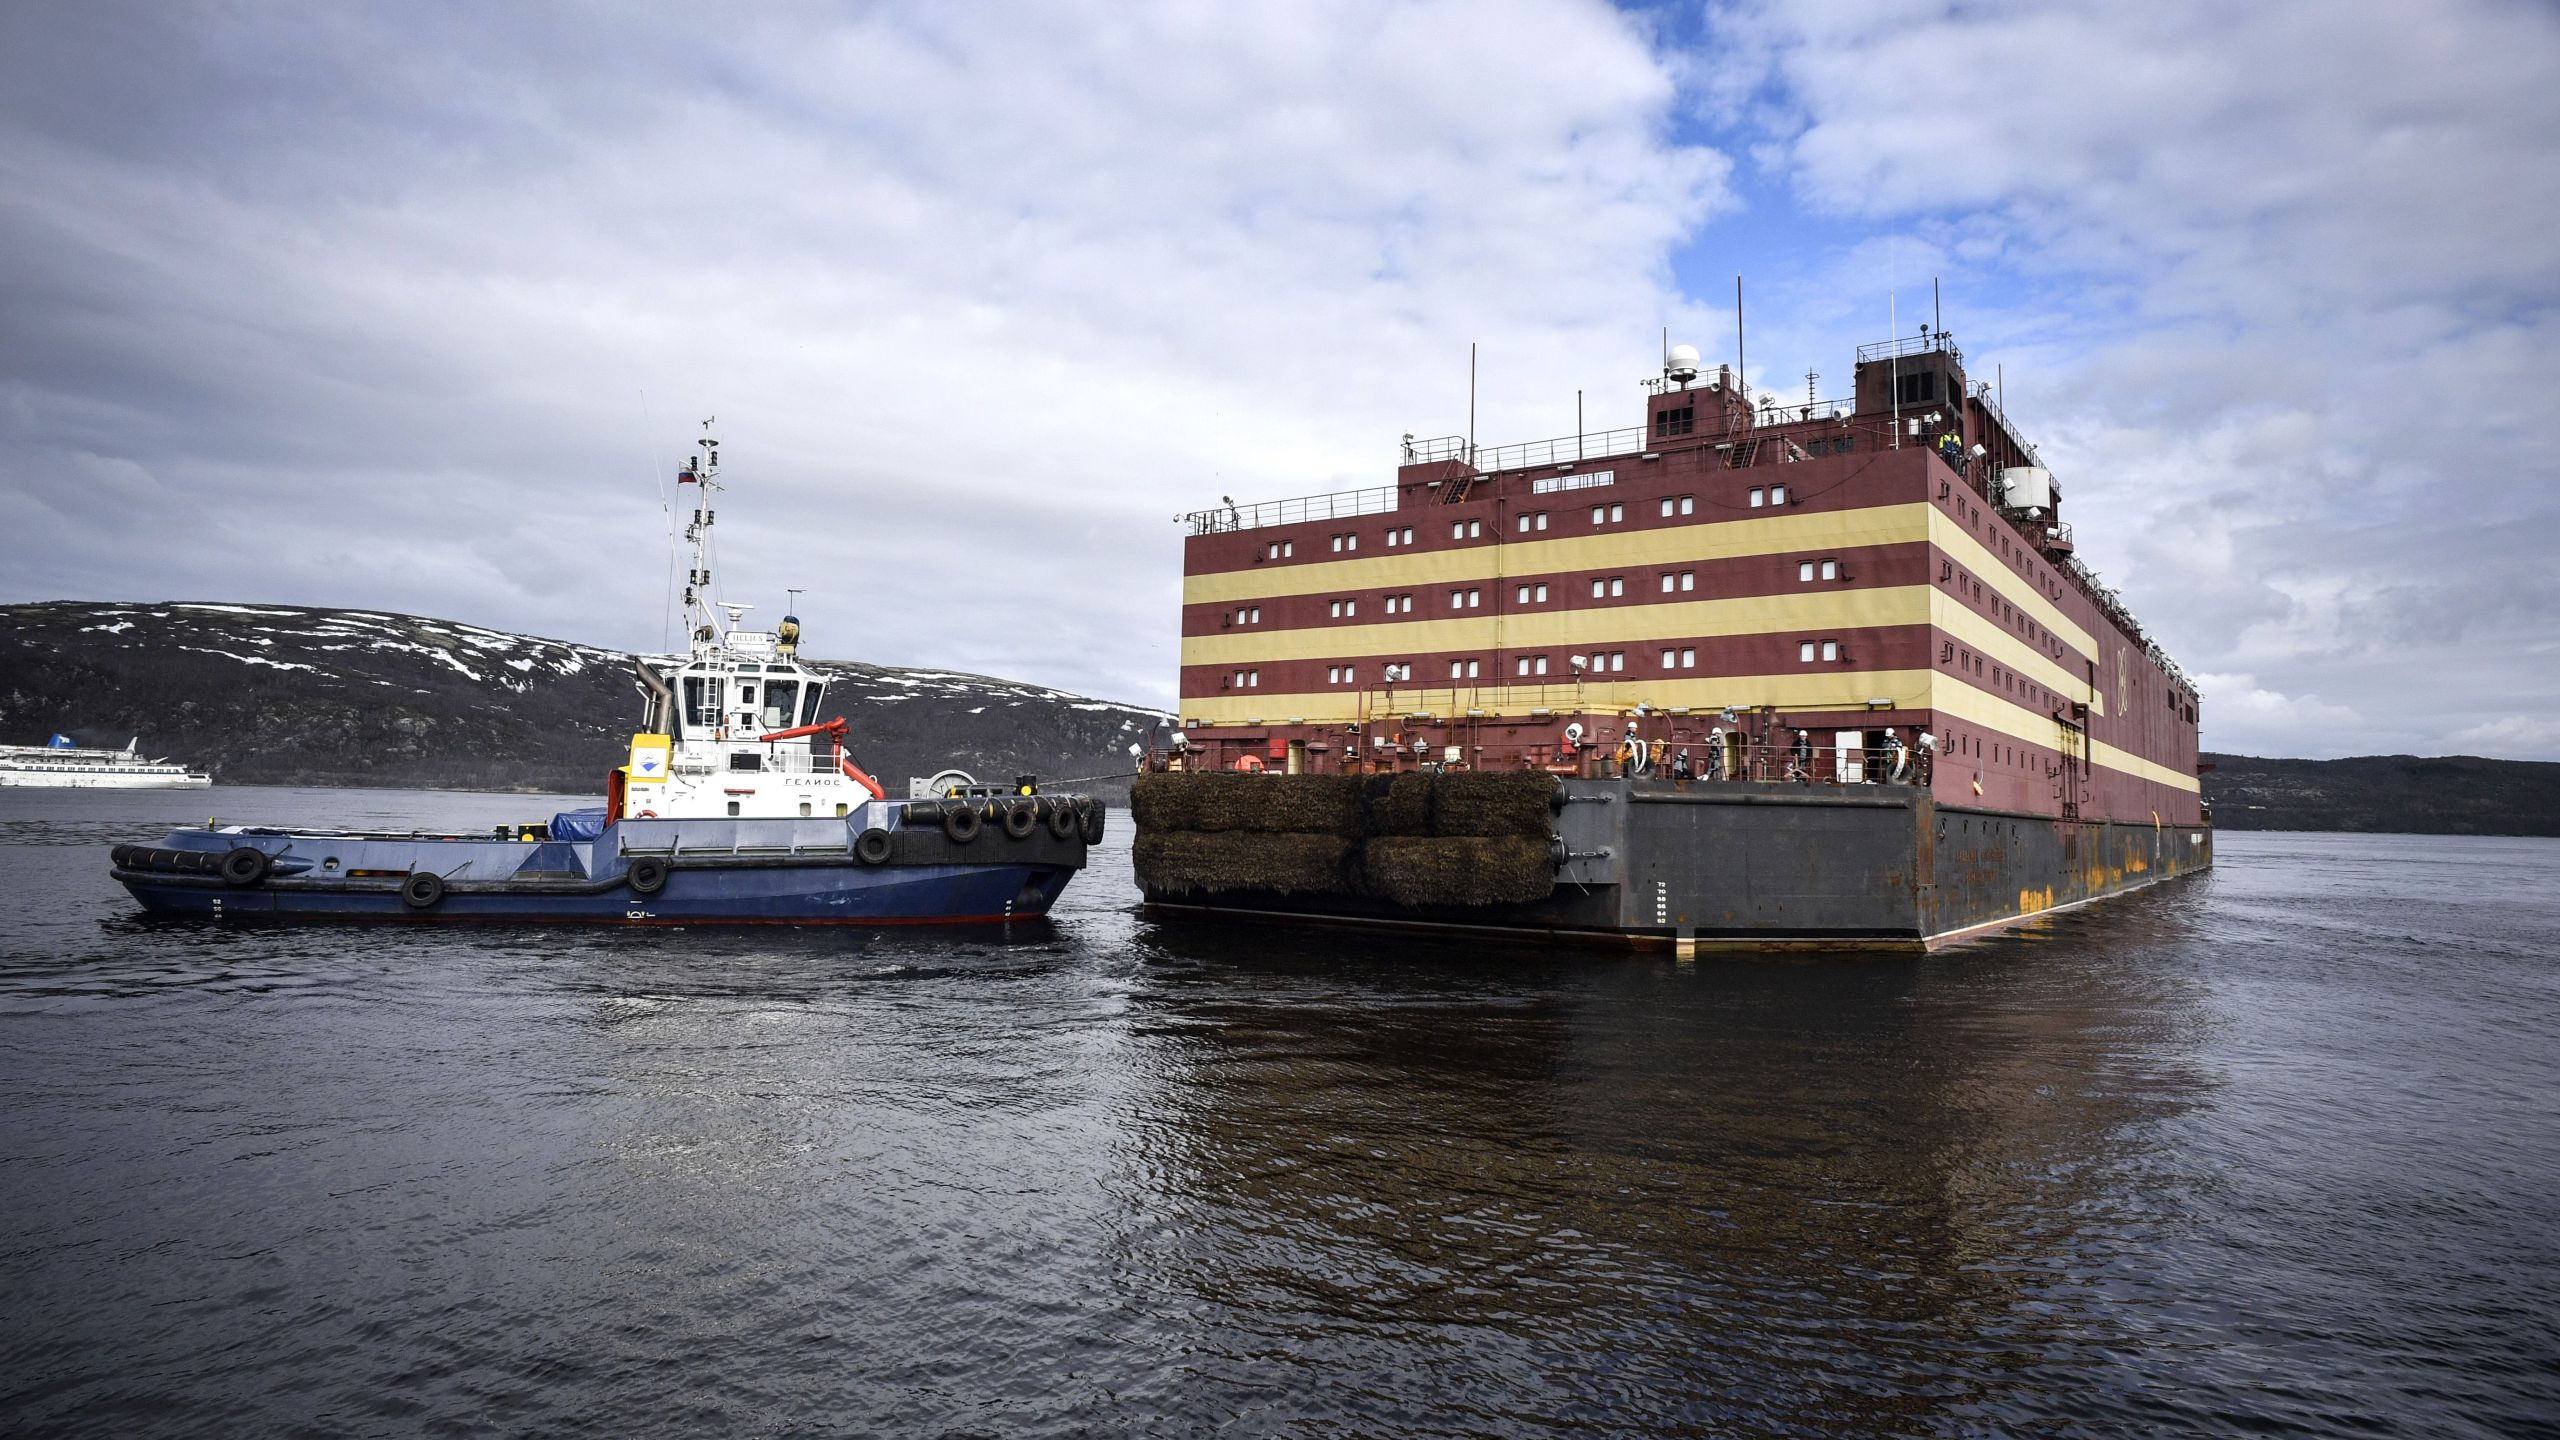 Floating power unit (FPU) Akademik Lomonosov is being towed to Atomflot moorage of the Russian northern port city of Murmansk on May 19, 2018. (Credit: ALEXANDER NEMENOV/AFP/Getty Images)